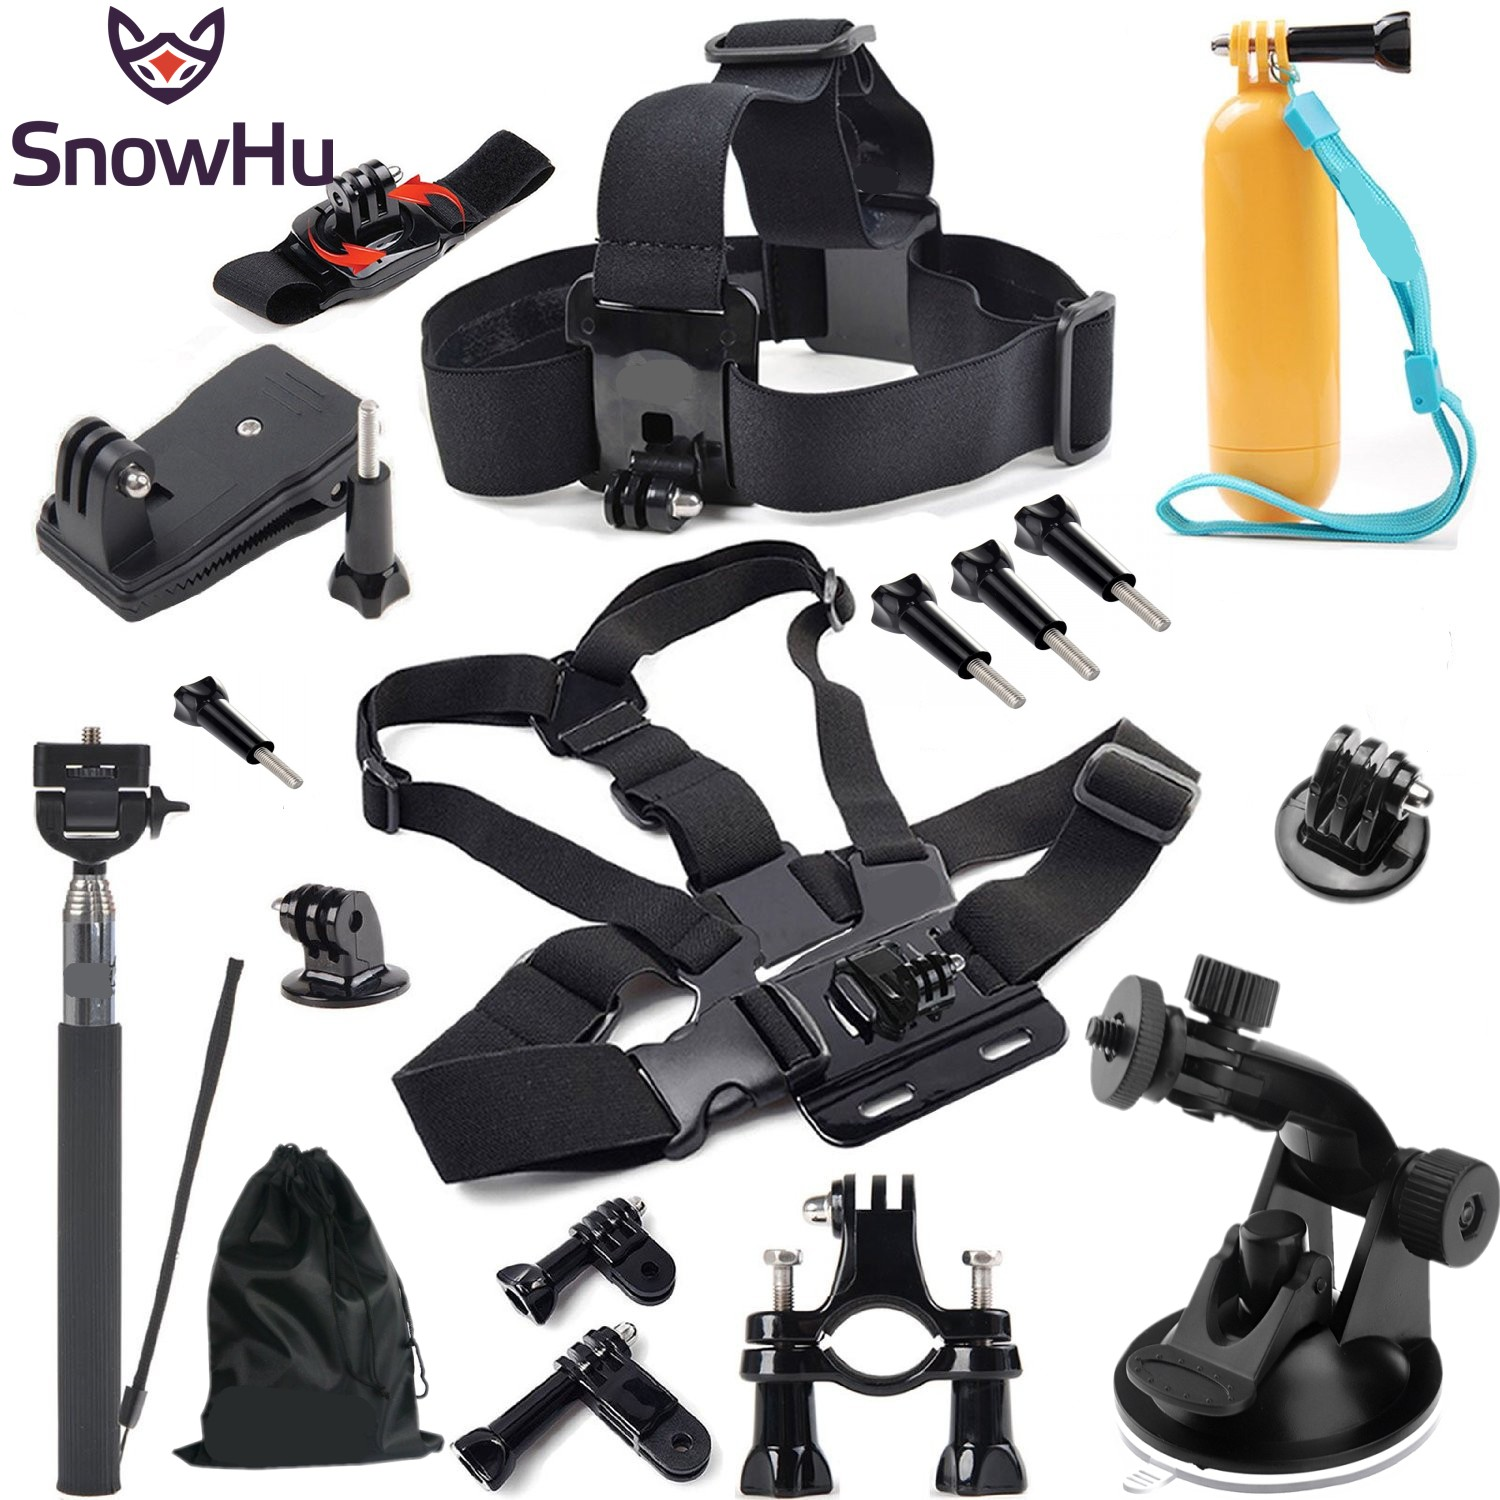 SnowHu For go pro Accessories Head chest strap bracelet Monopod with Mount Adapter for GoPro Hero